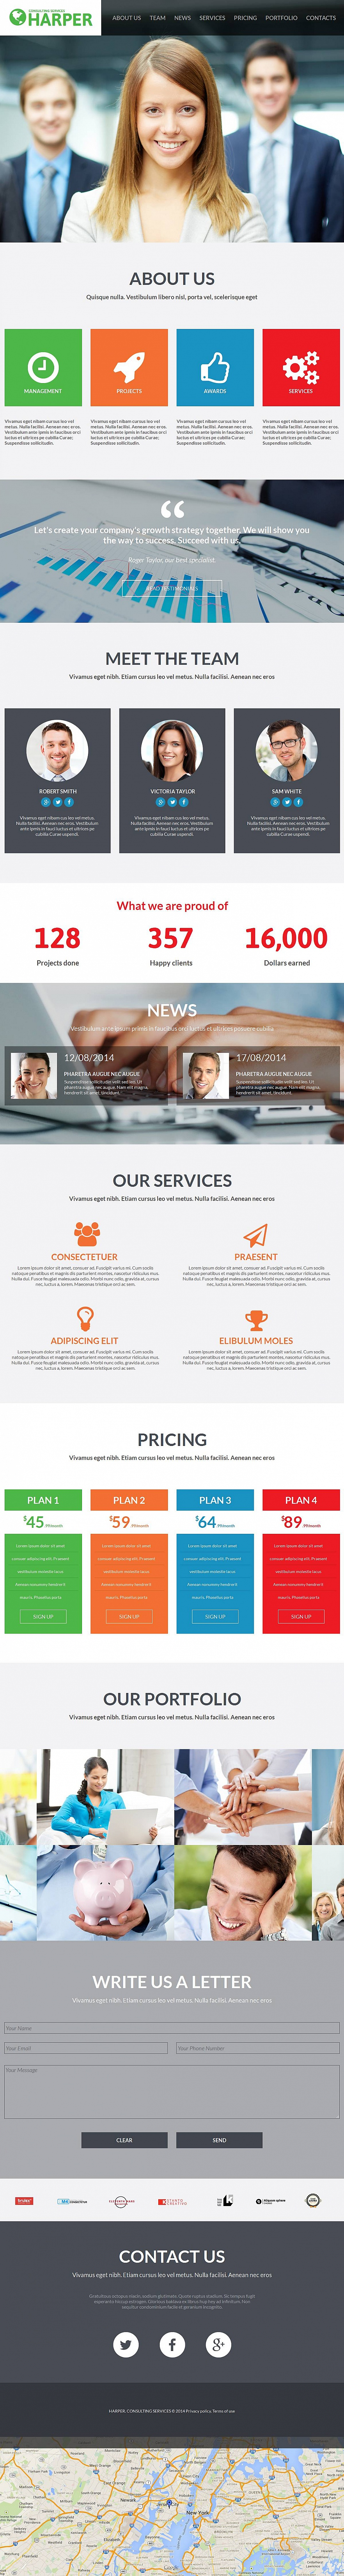 Complete Web Design for Your Consulting Business - image